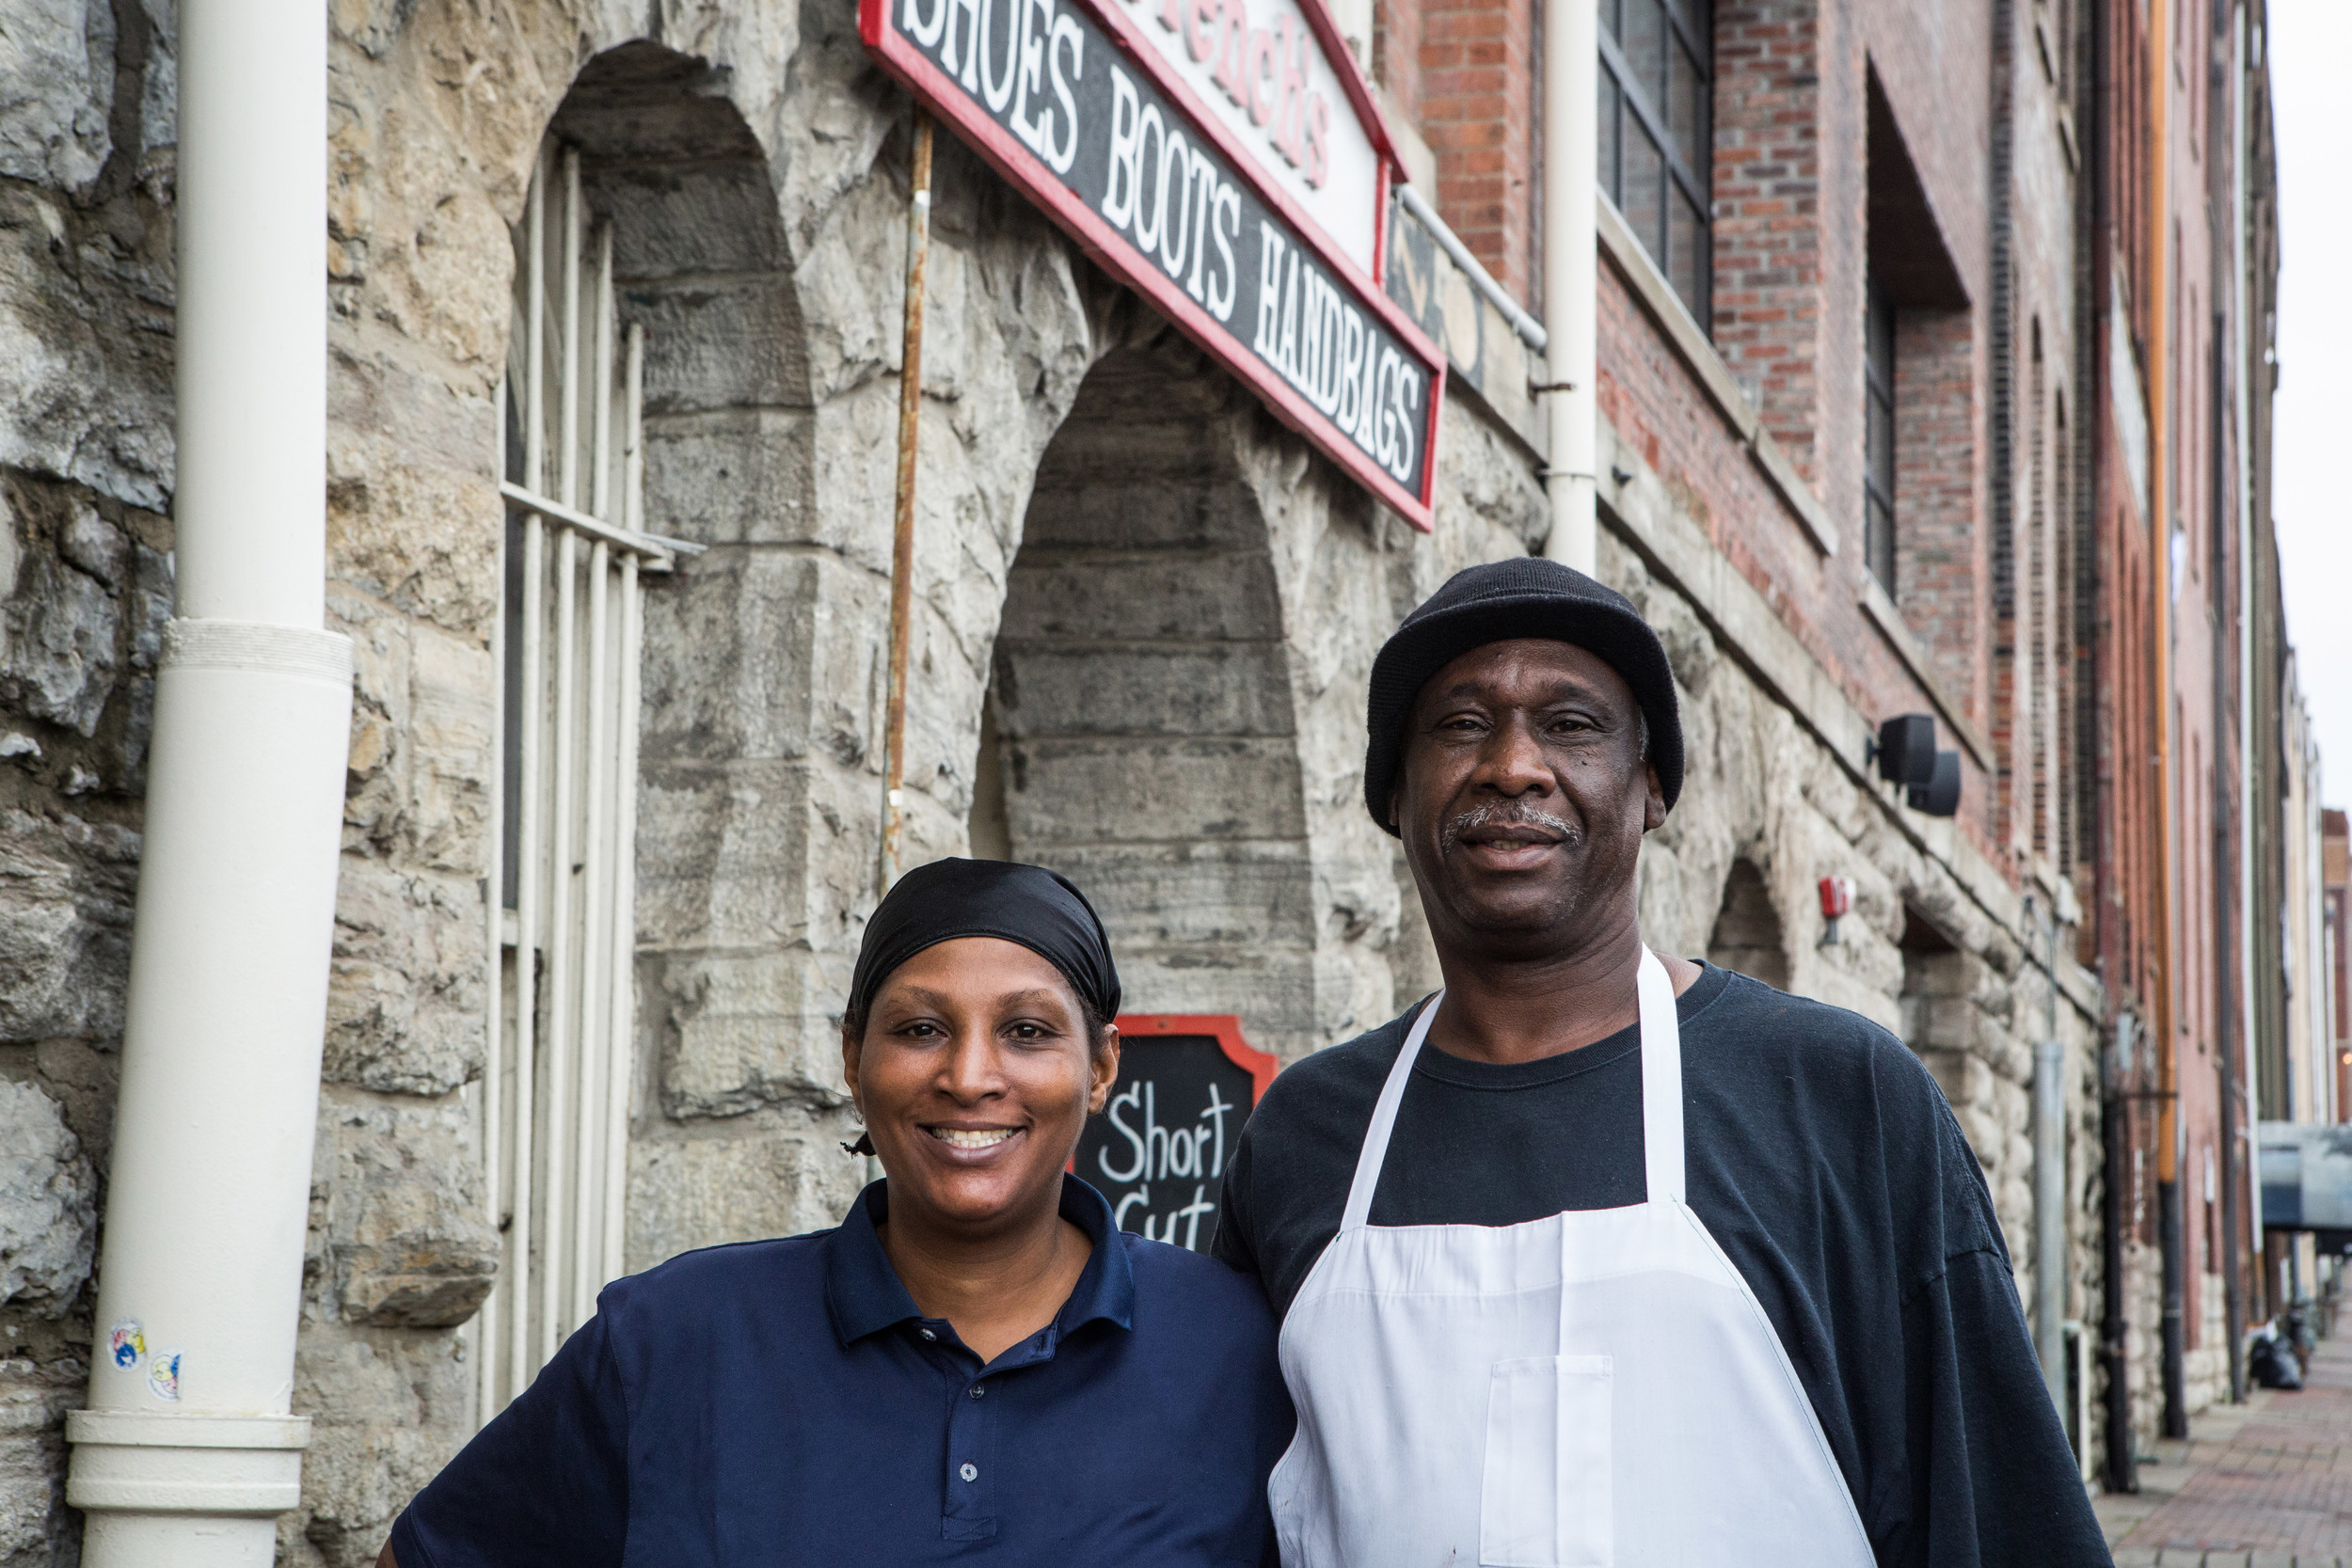 These two stepped out of a leather working shop for a break, and I just knew I had to catch their smiling faces. When they saw me approach they thought I was lost and kindly offered directions.I awkwardly asked for a photo instead and they laughed and obliged. Thanks for being real nice and smiley, Music City.